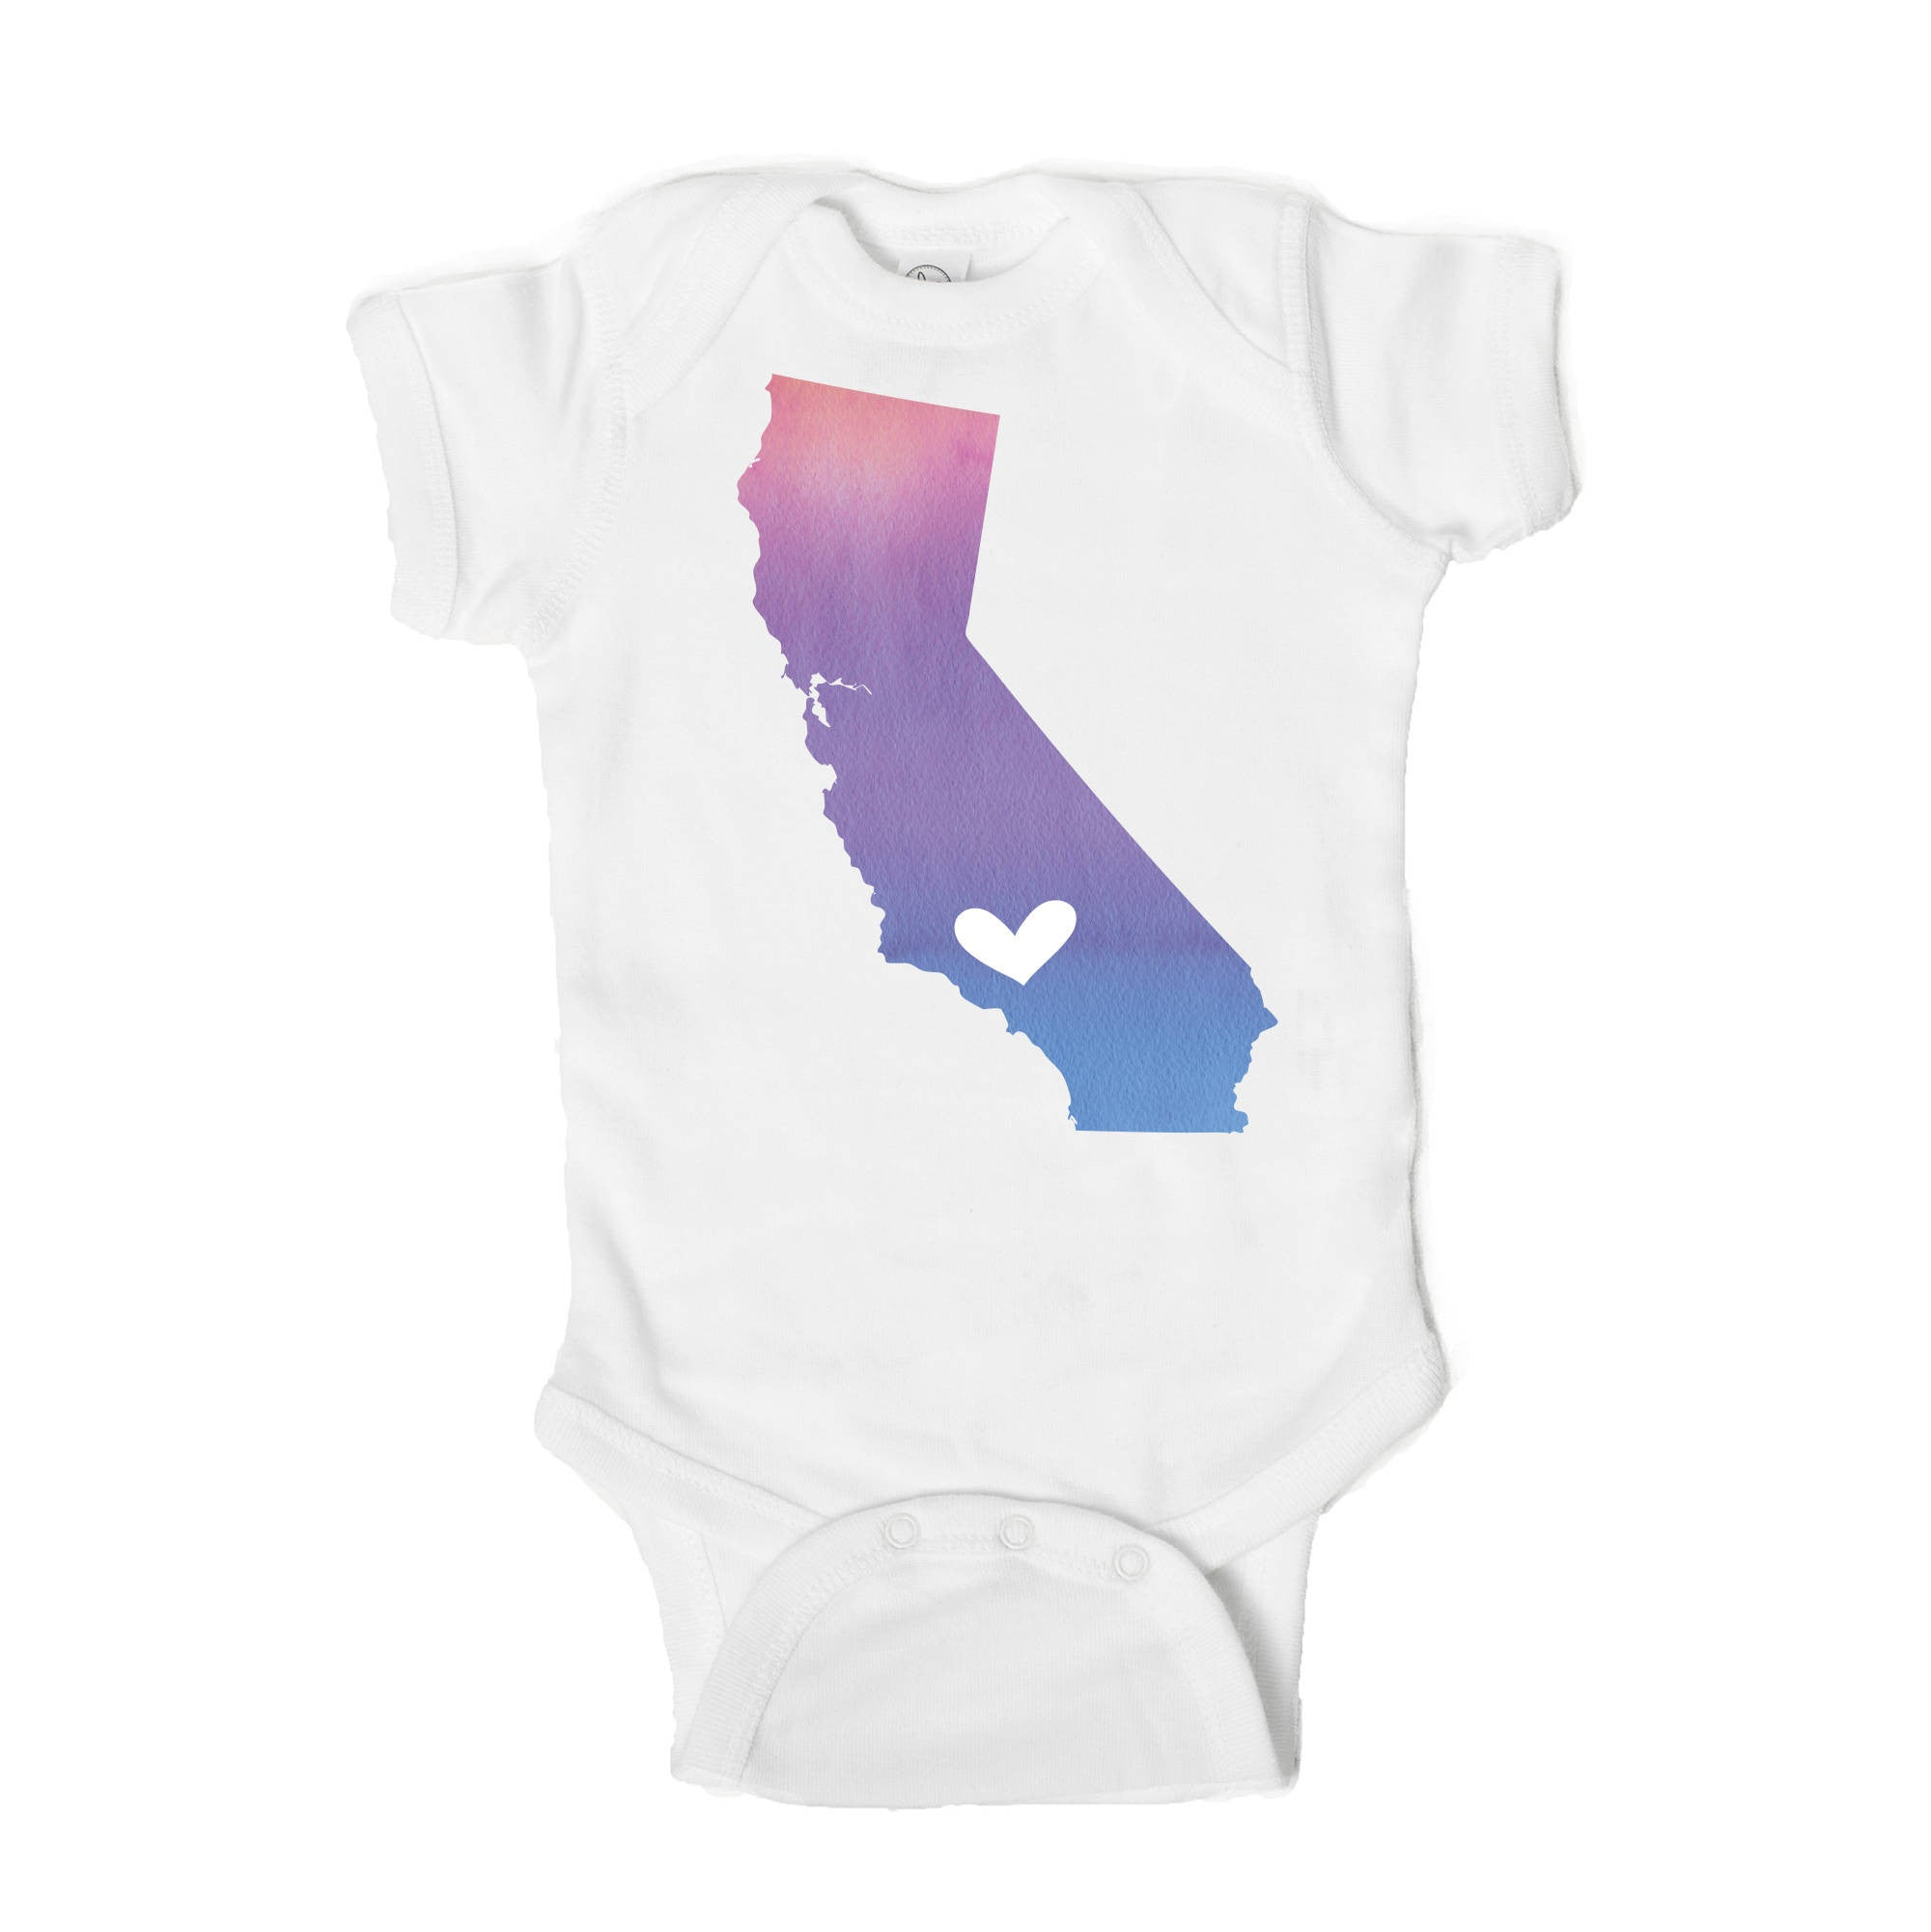 Los Angeles Heart Baby Onesie - One Strange Bird